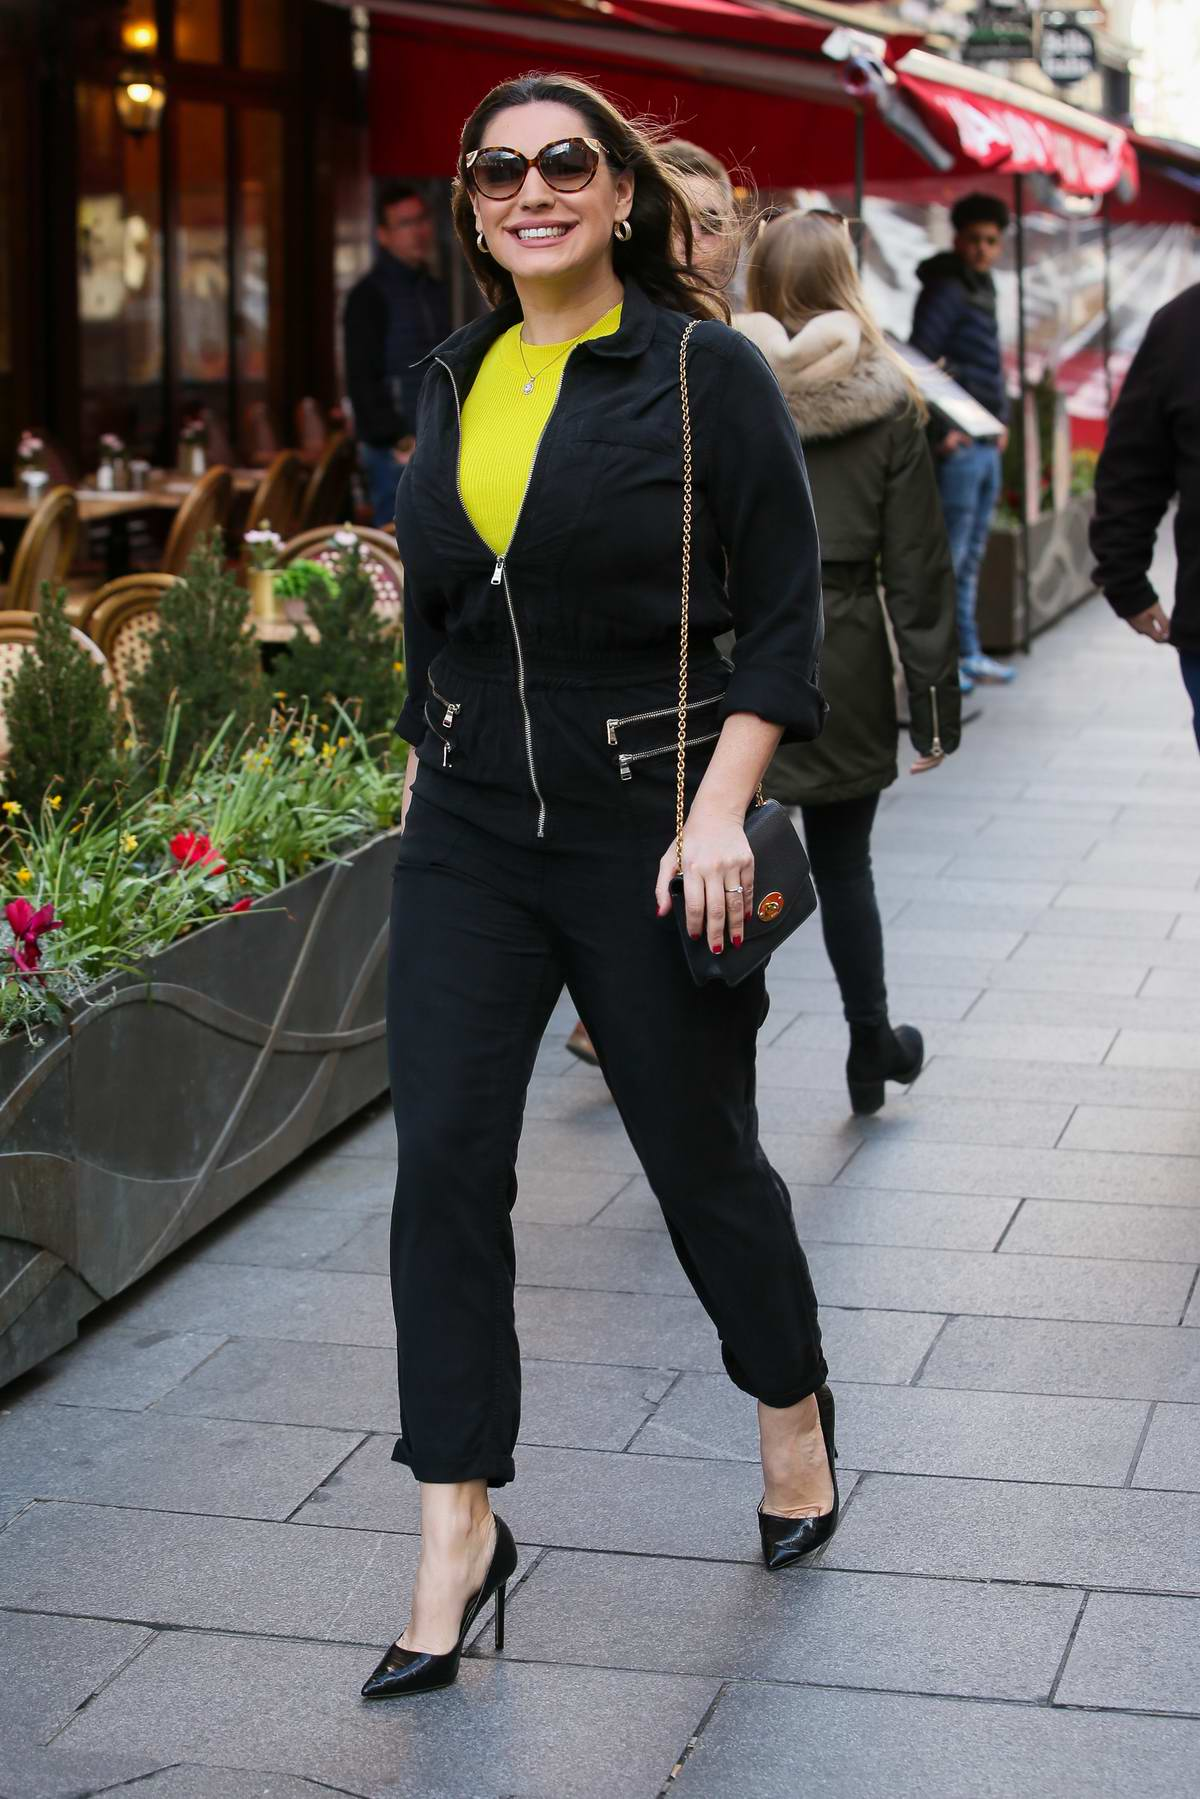 Kelly Brook dons an all black jumpsuit as she arrives at Global Radio studios in London, UK